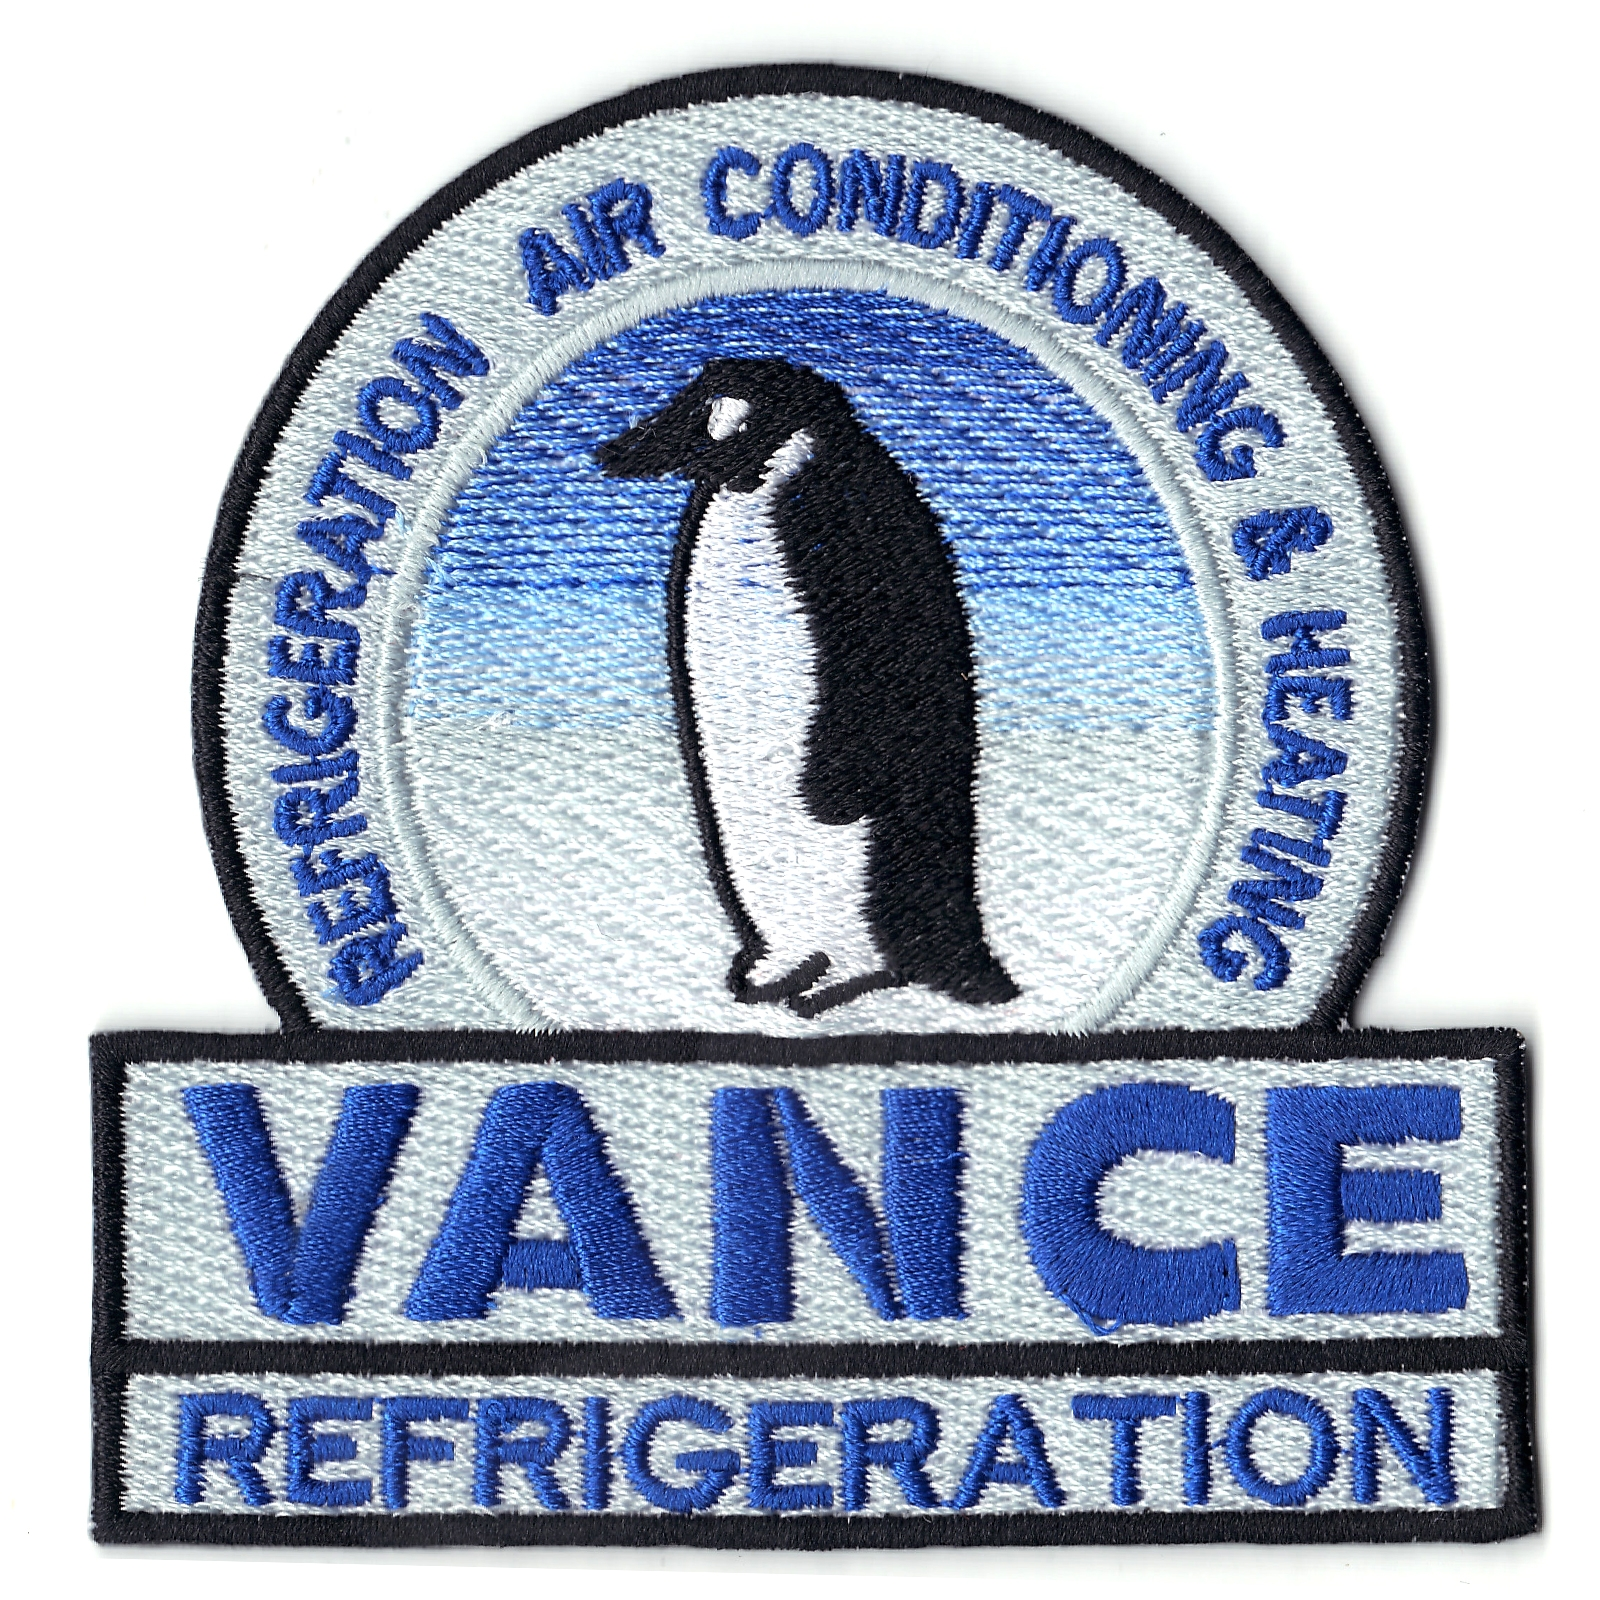 Vance Refrigeration With Penguin Logo Iron On Patch